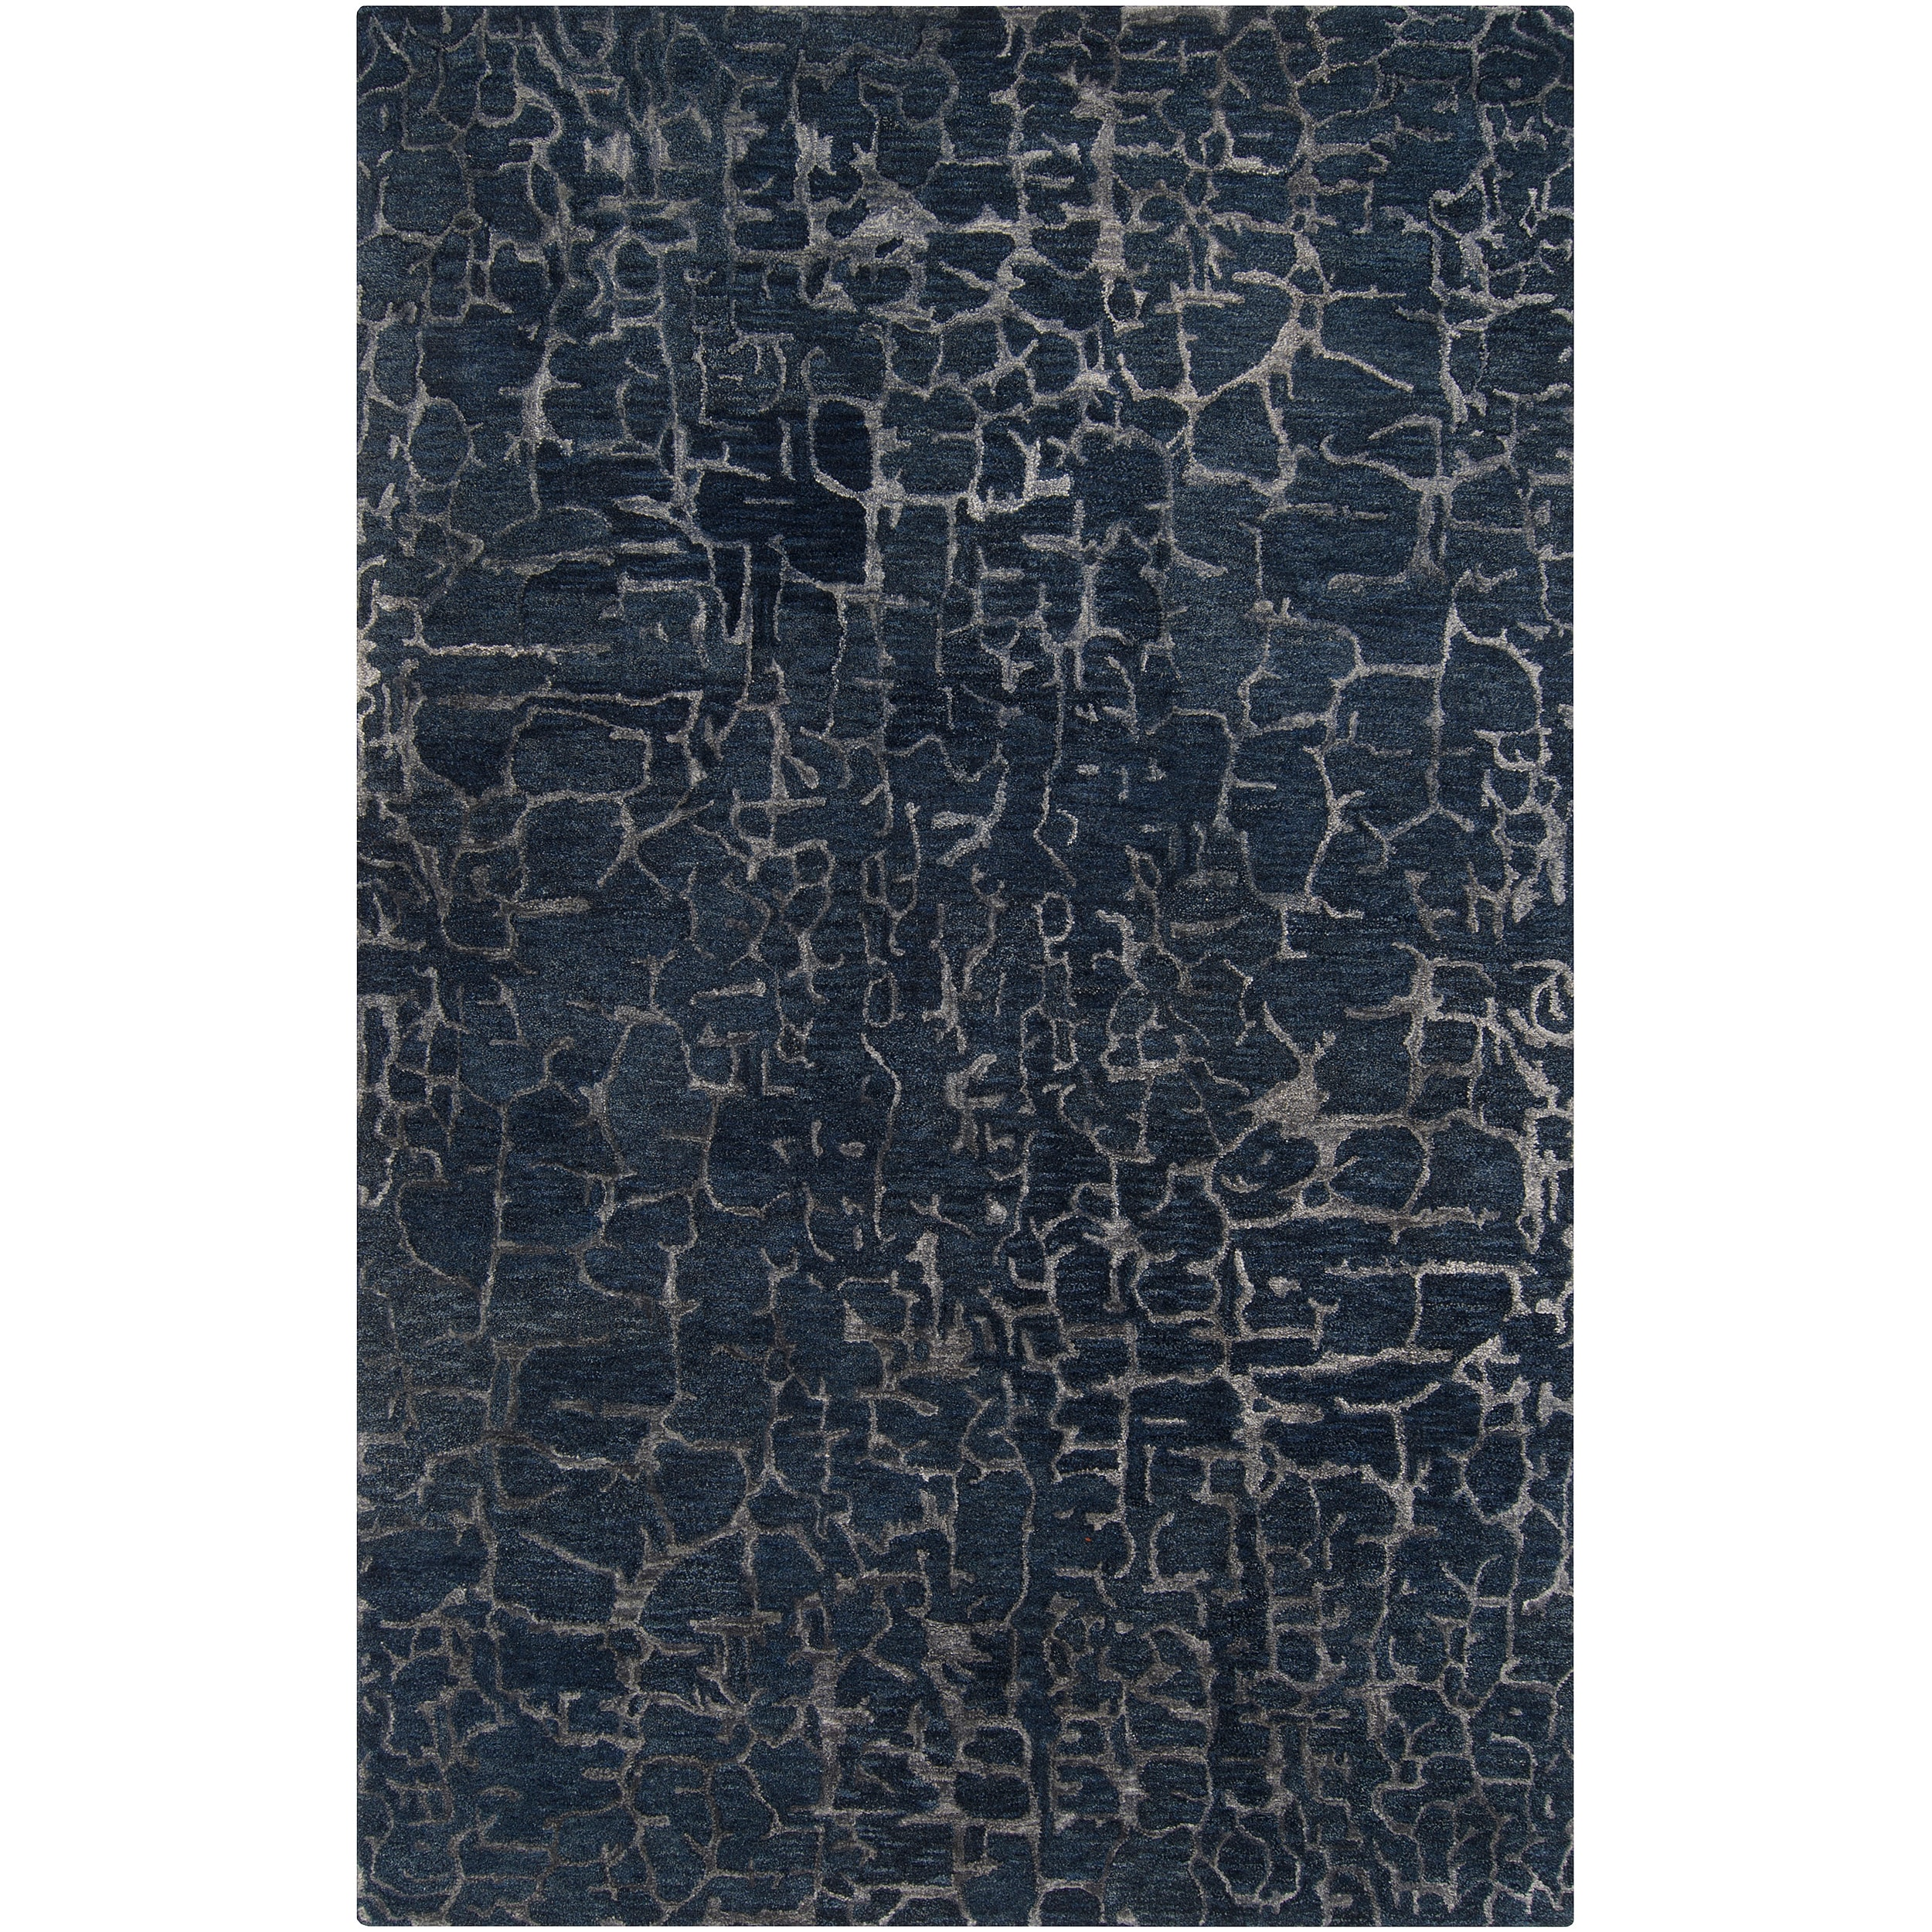 Silver Orchid Michel Hand-tufted Contemporary Blue Papillion New Zealand Wool Abstract Area Rug - 8' x 11'